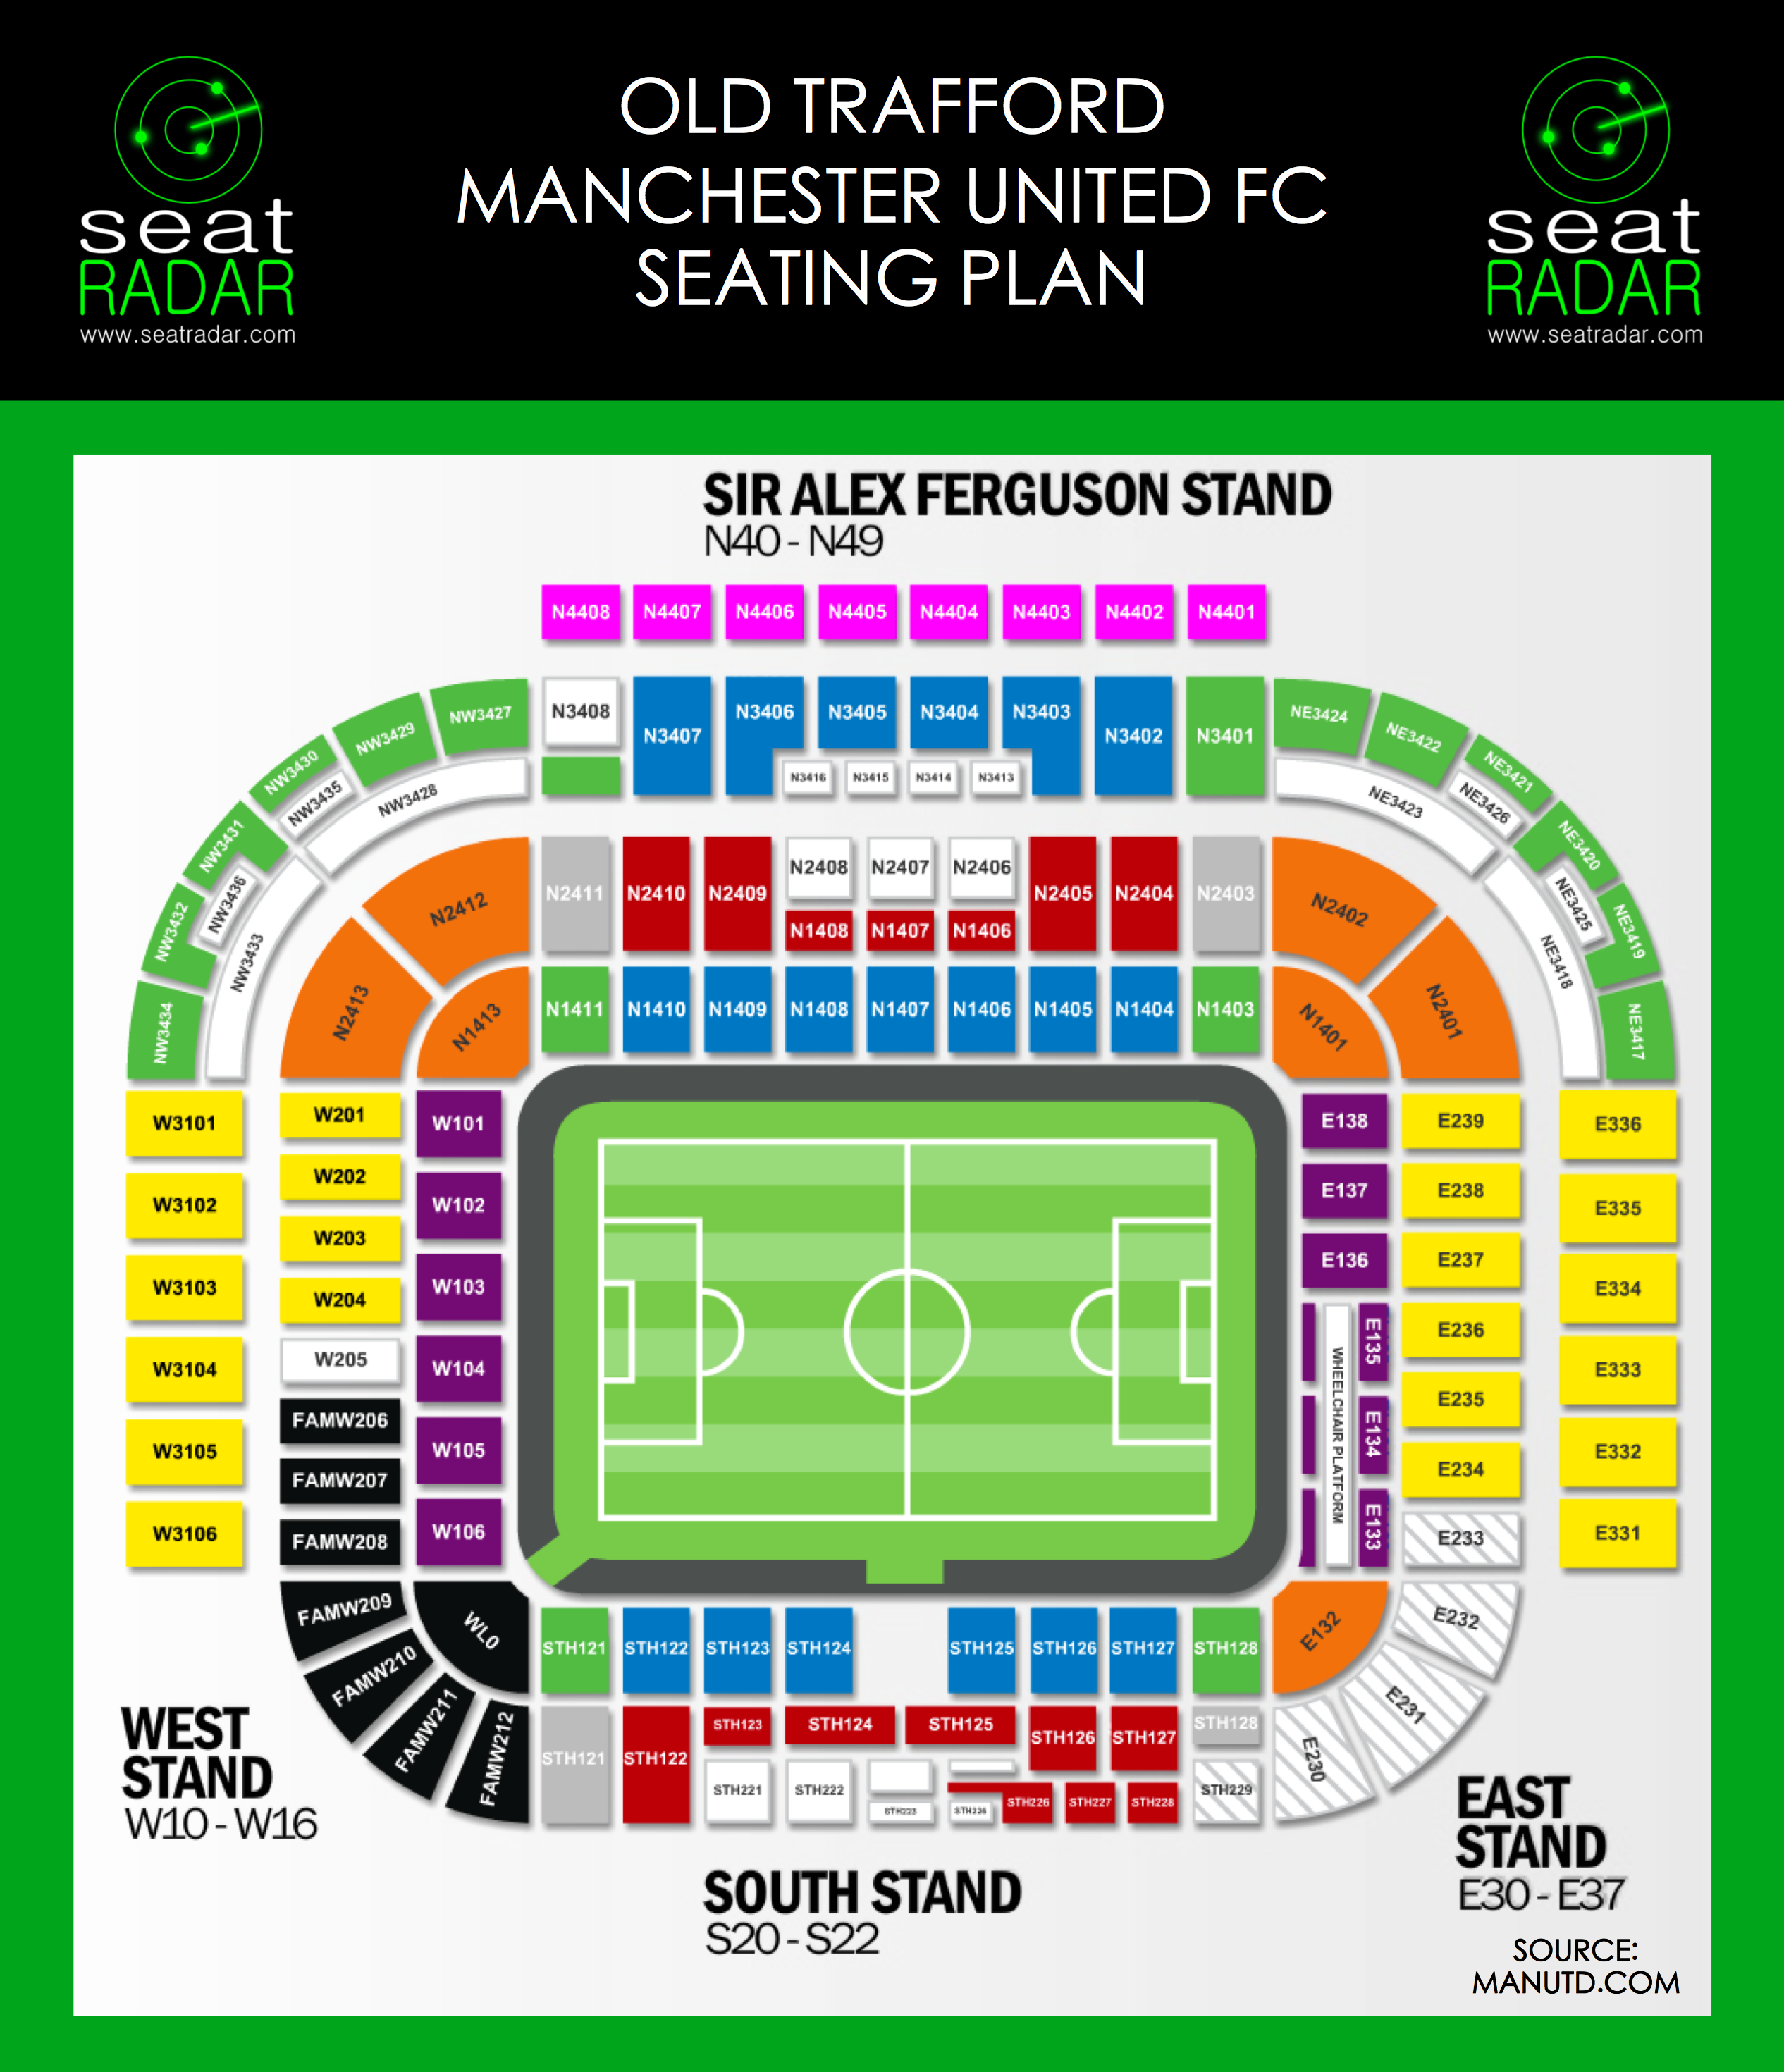 Old Trafford Seating Plan (Temporary